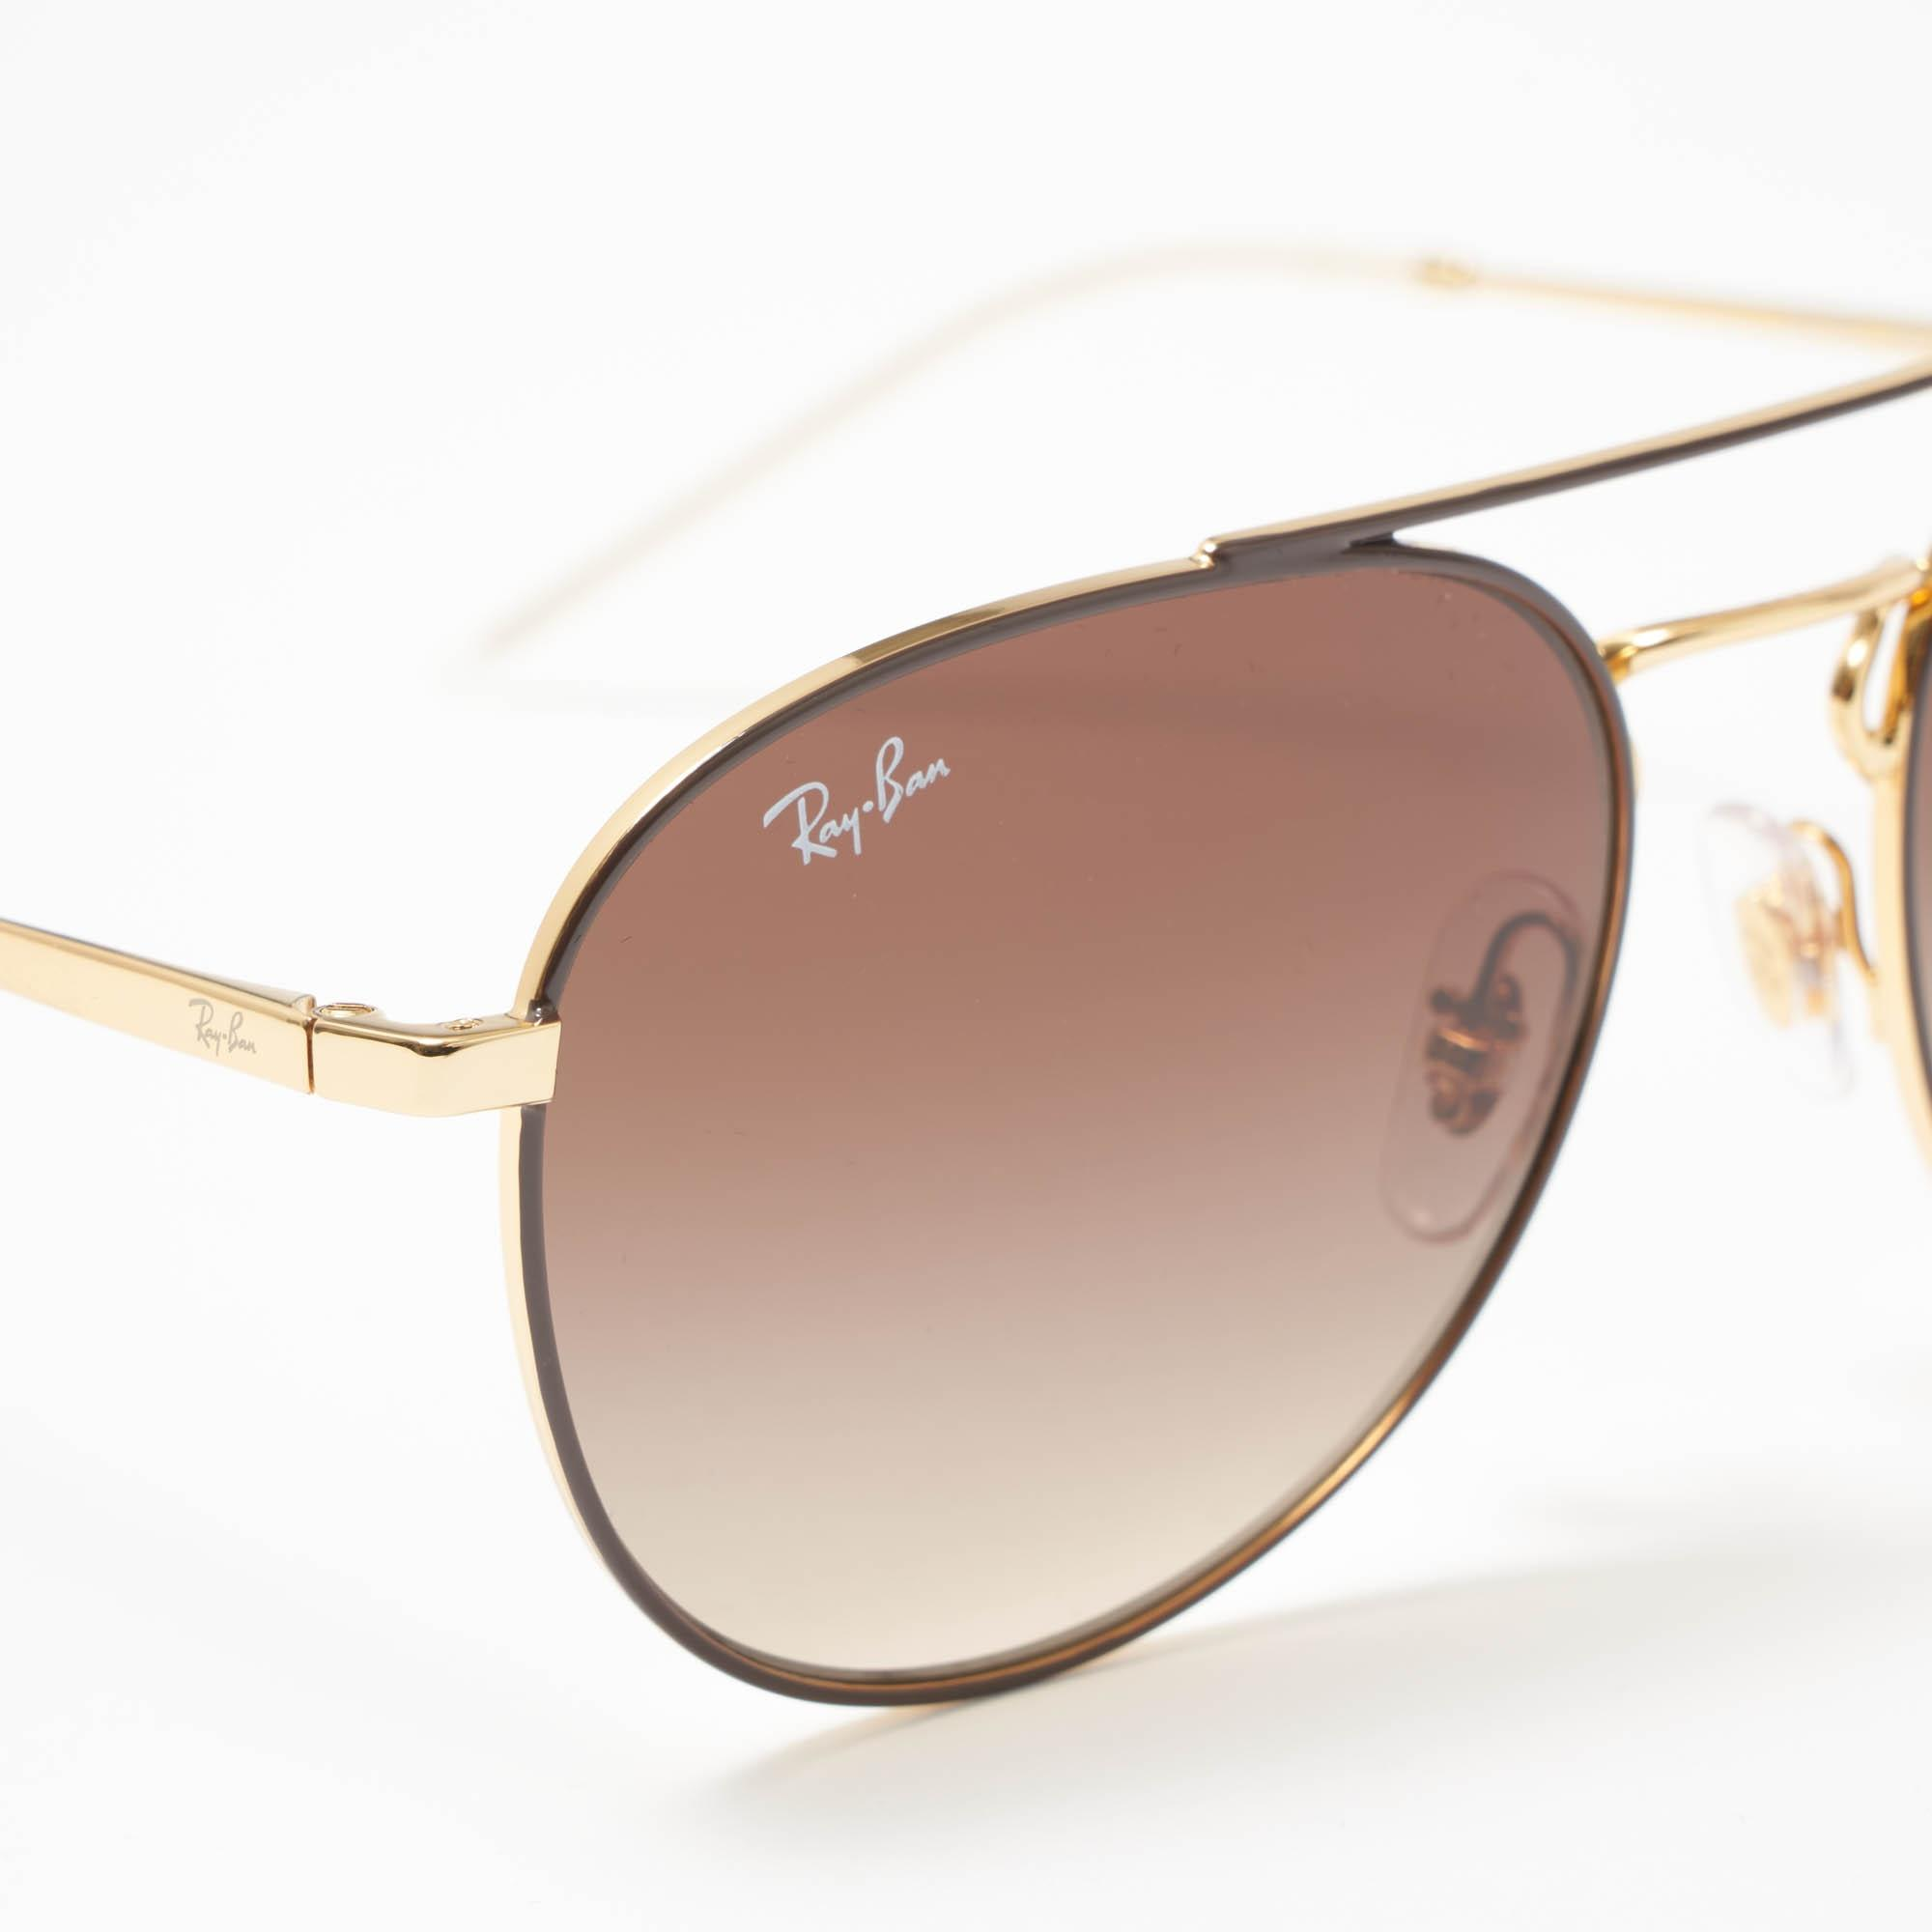 5c3a9bdd03 Ray-Ban Gold Rb3589 Sunglasses - Brown Gradient Lenses in Metallic ...